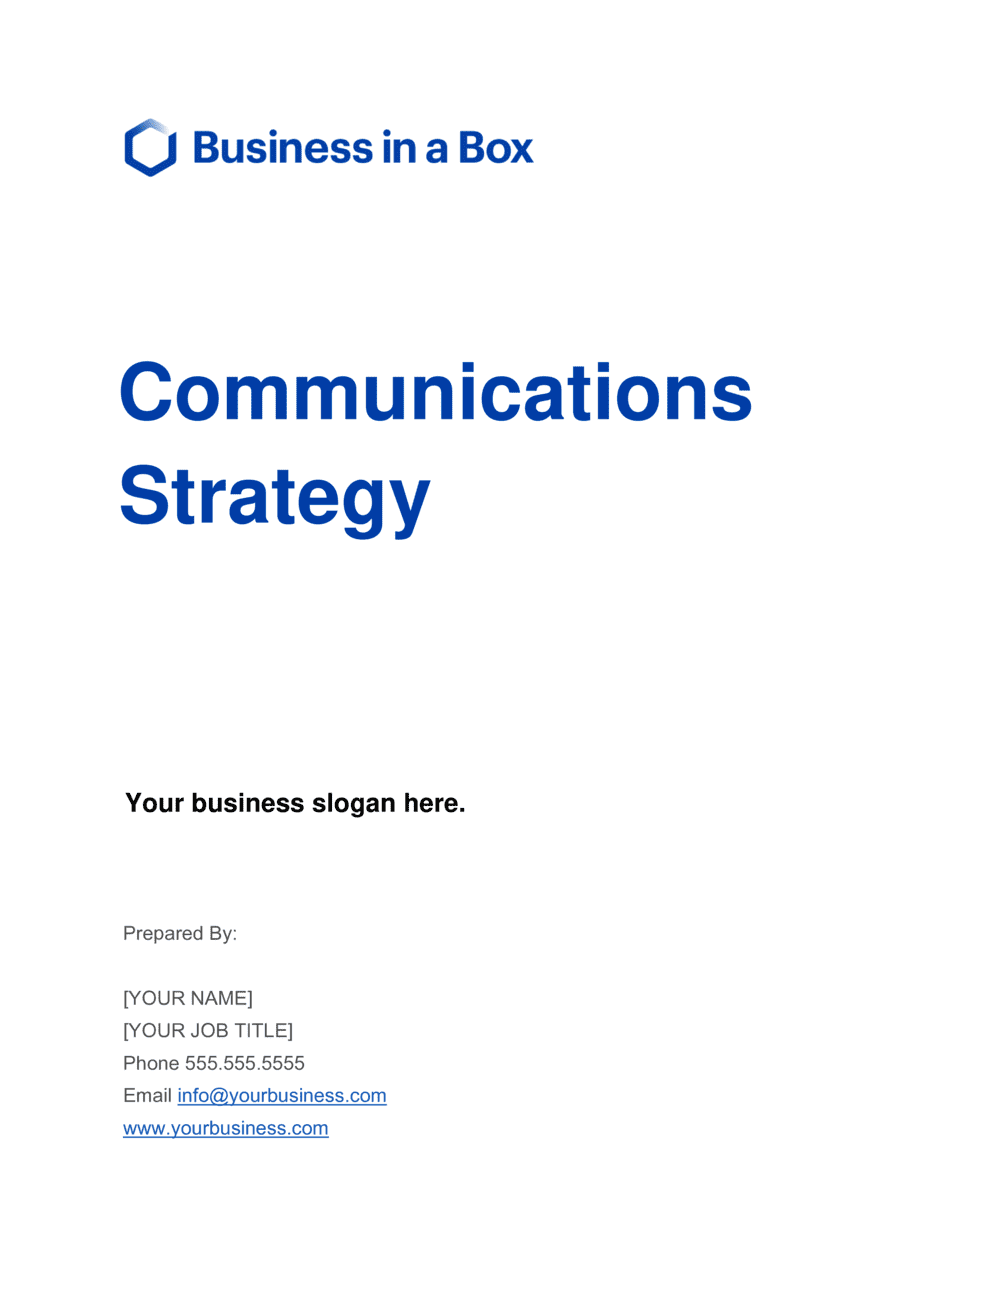 Business-in-a-Box's Communications Strategy Template